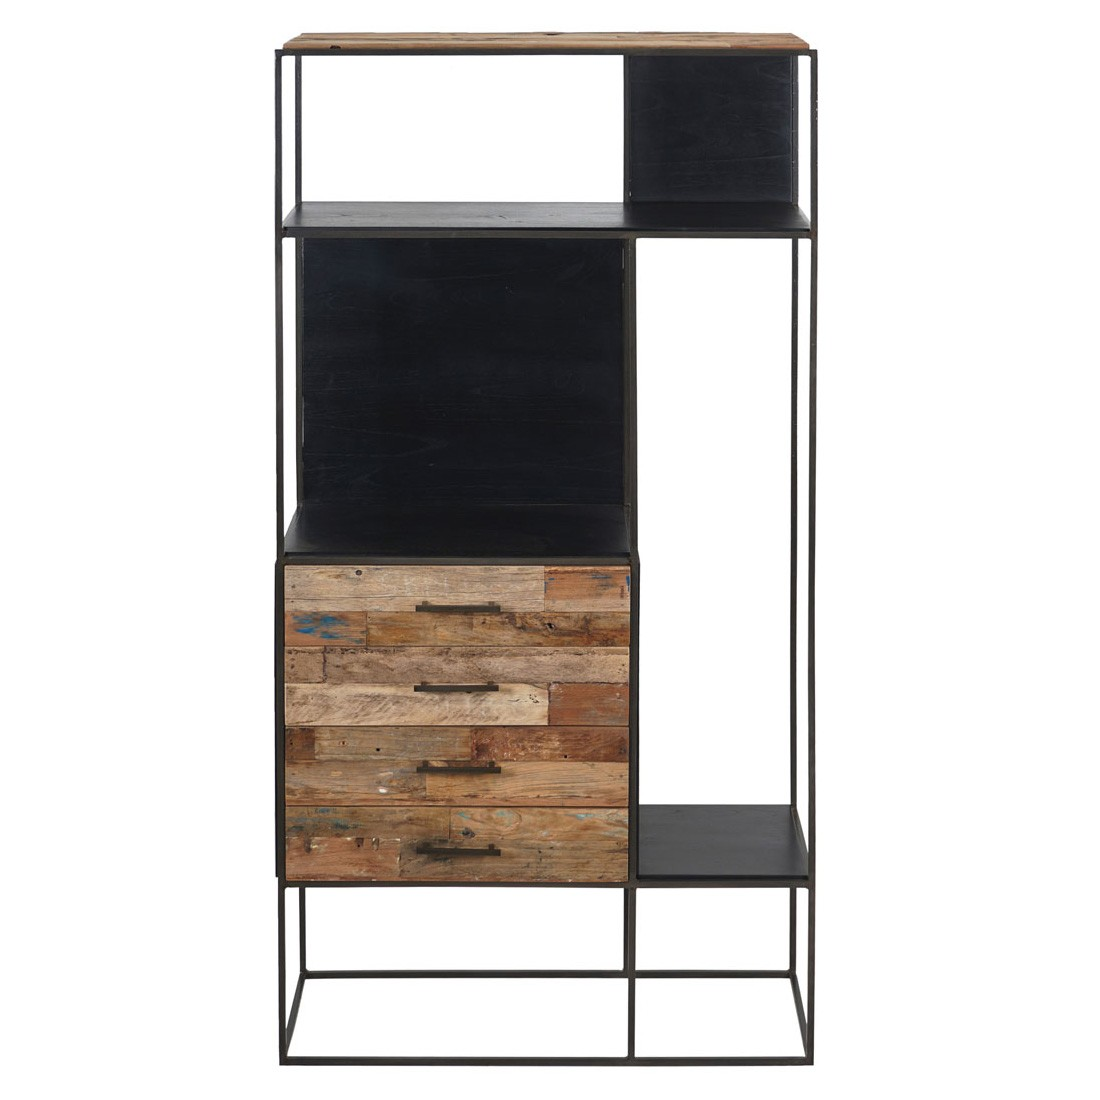 Sublime Commercial Grade Recycled Timber & Iron Storage Unit